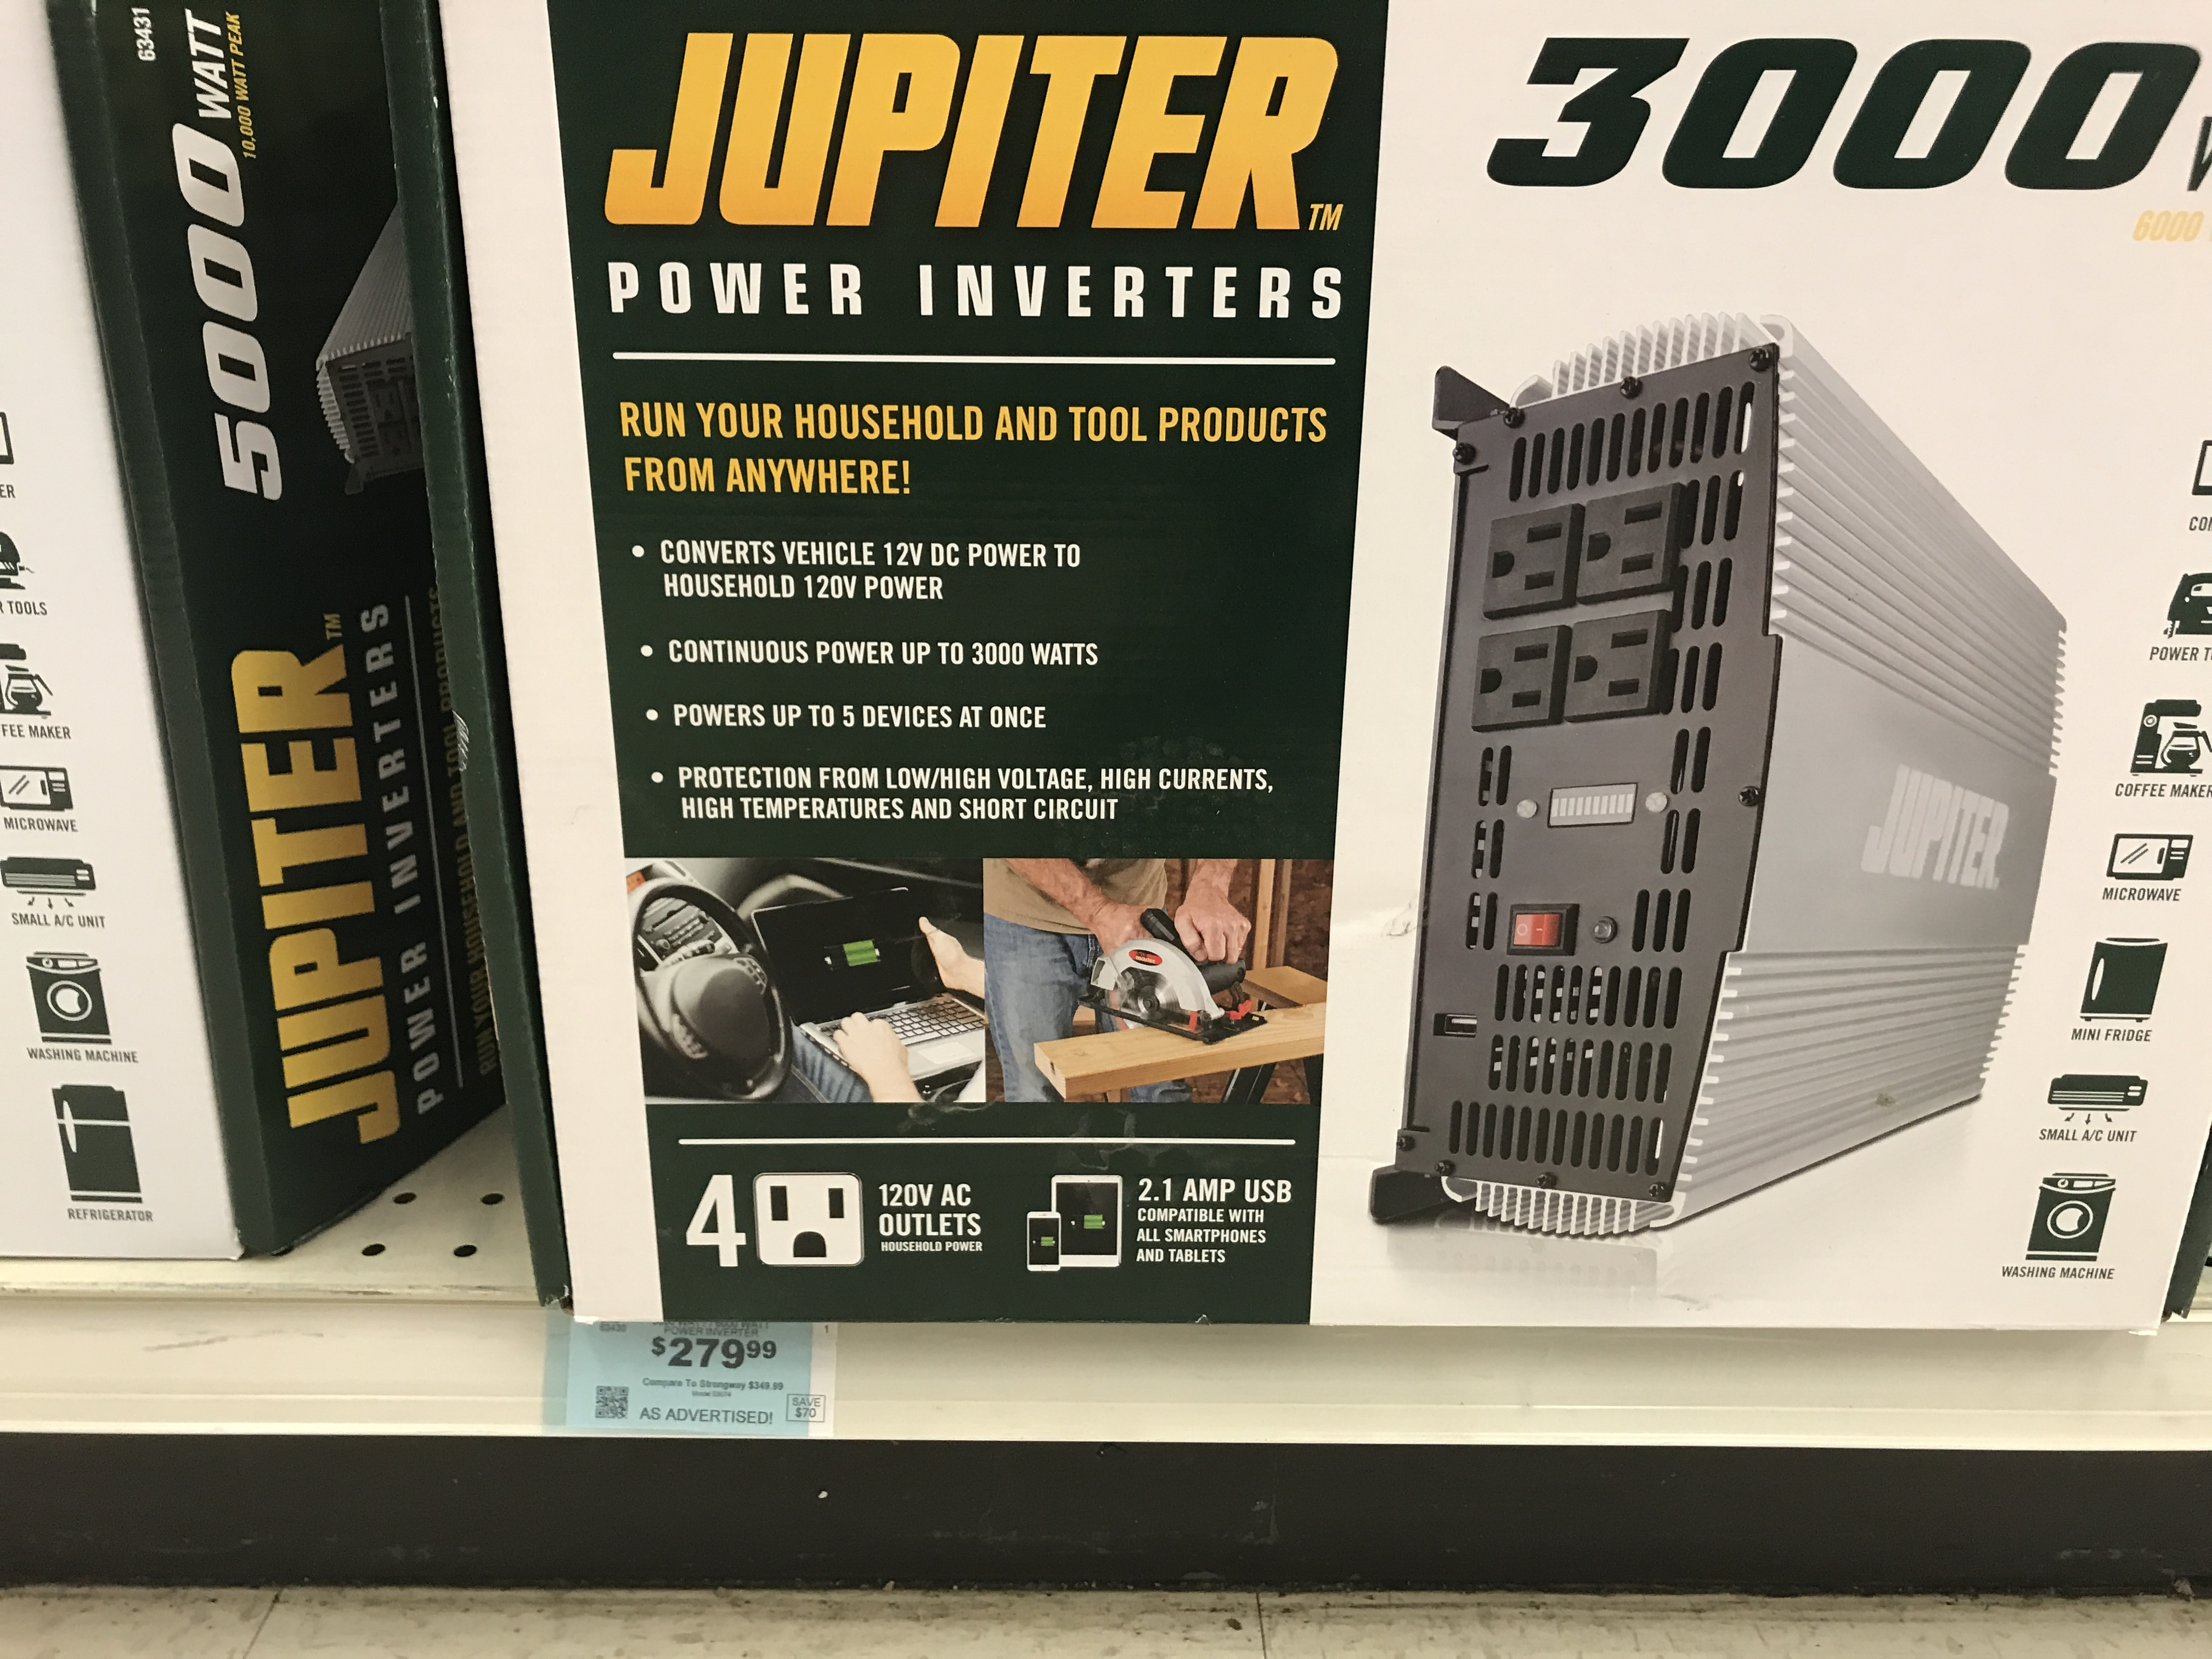 Solar Power For Boat Lift And Dock Ballofspray Water Ski Forum How To Build A100 Watt Pure Sine Wave Inverter Circuit Electronic A Jupiter 3000w Panel Thinking May Not Go Wrong Buying The 3 Year Warranty They Have 5000 W That Is 100 Bucks More